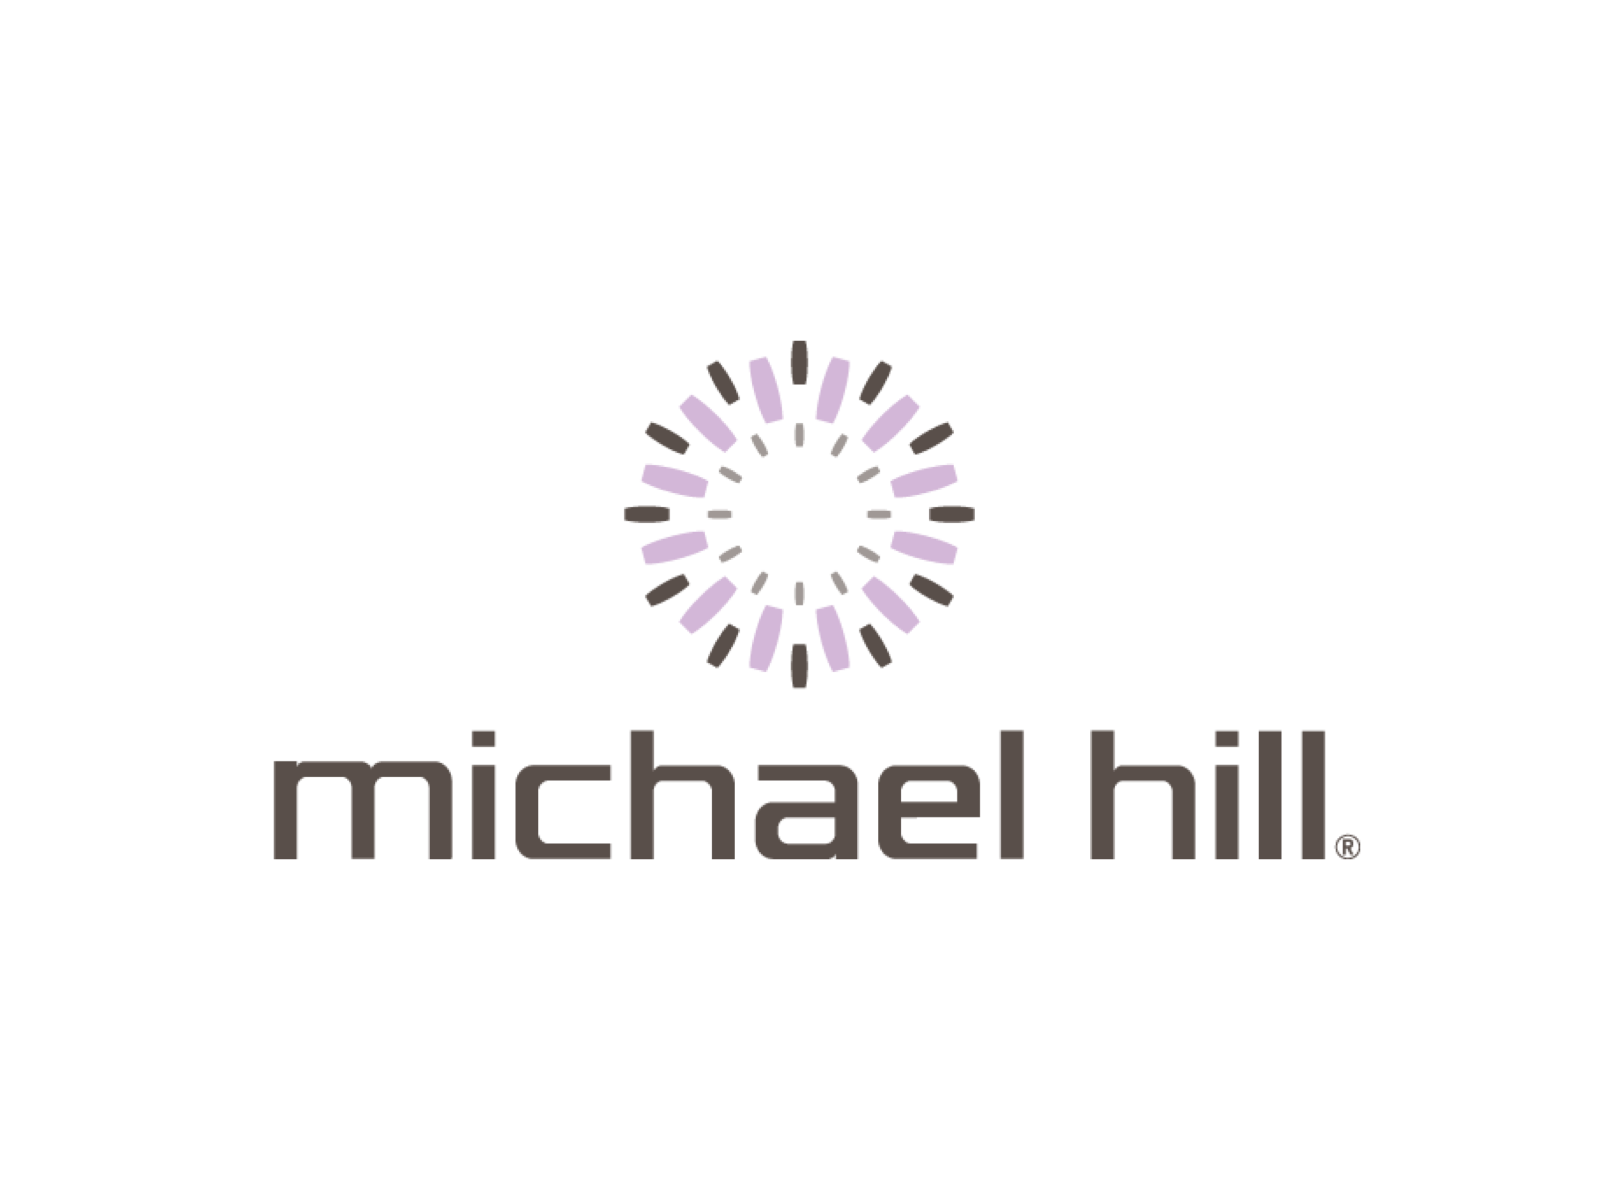 Xref provides greater confidence in hiring for Michael Hill